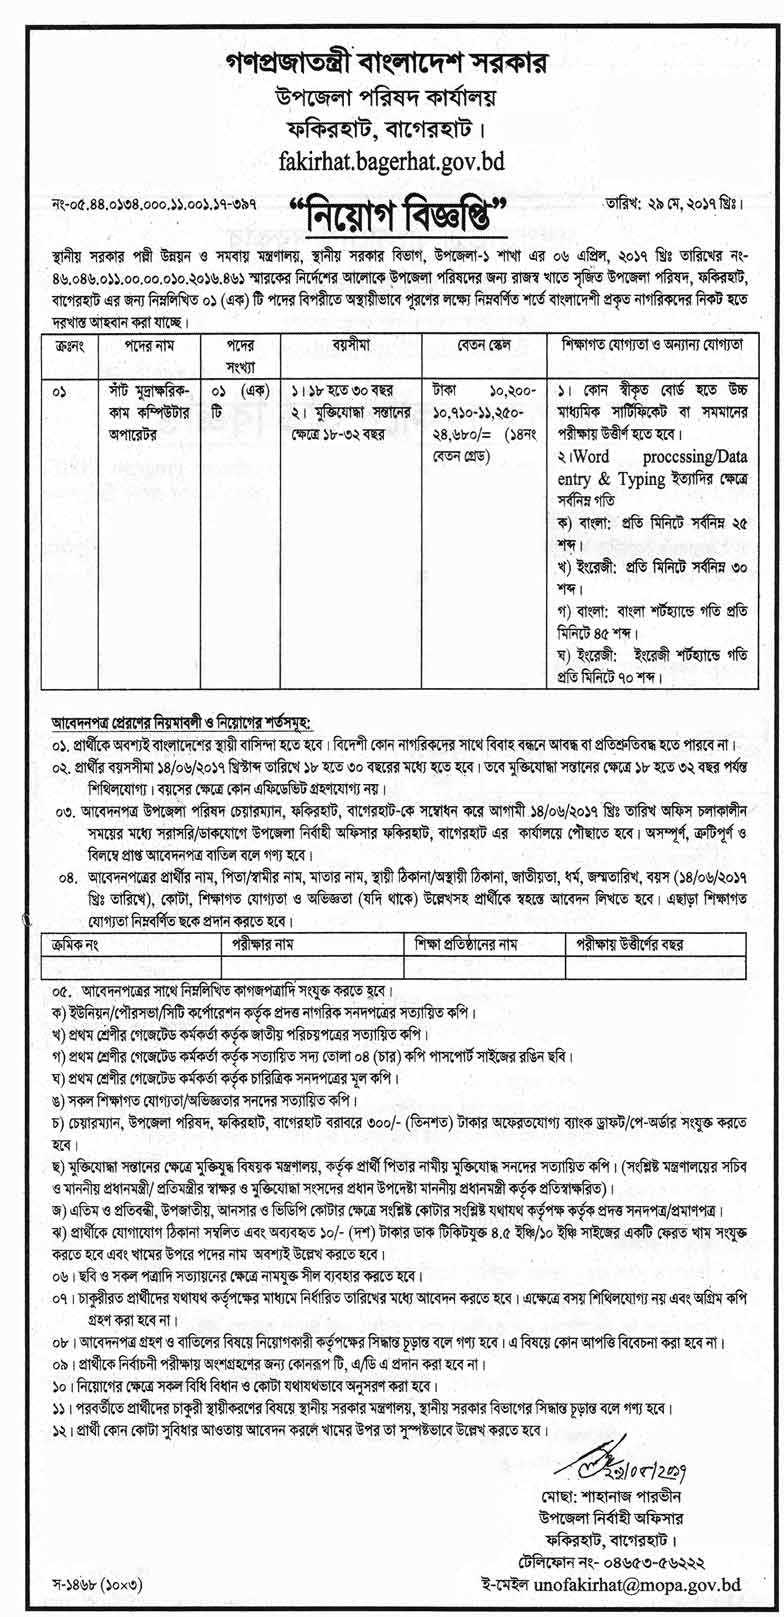 Bagerhat Upazila Parishad office job circular 2017